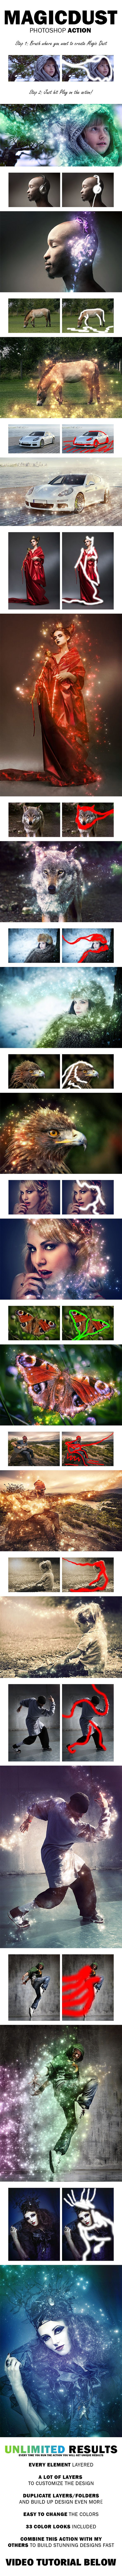 MagicDust Photoshop Action #photoeffect Download: http://graphicriver.net/item/magicdust-photoshop-action/11372261?ref=ksioks